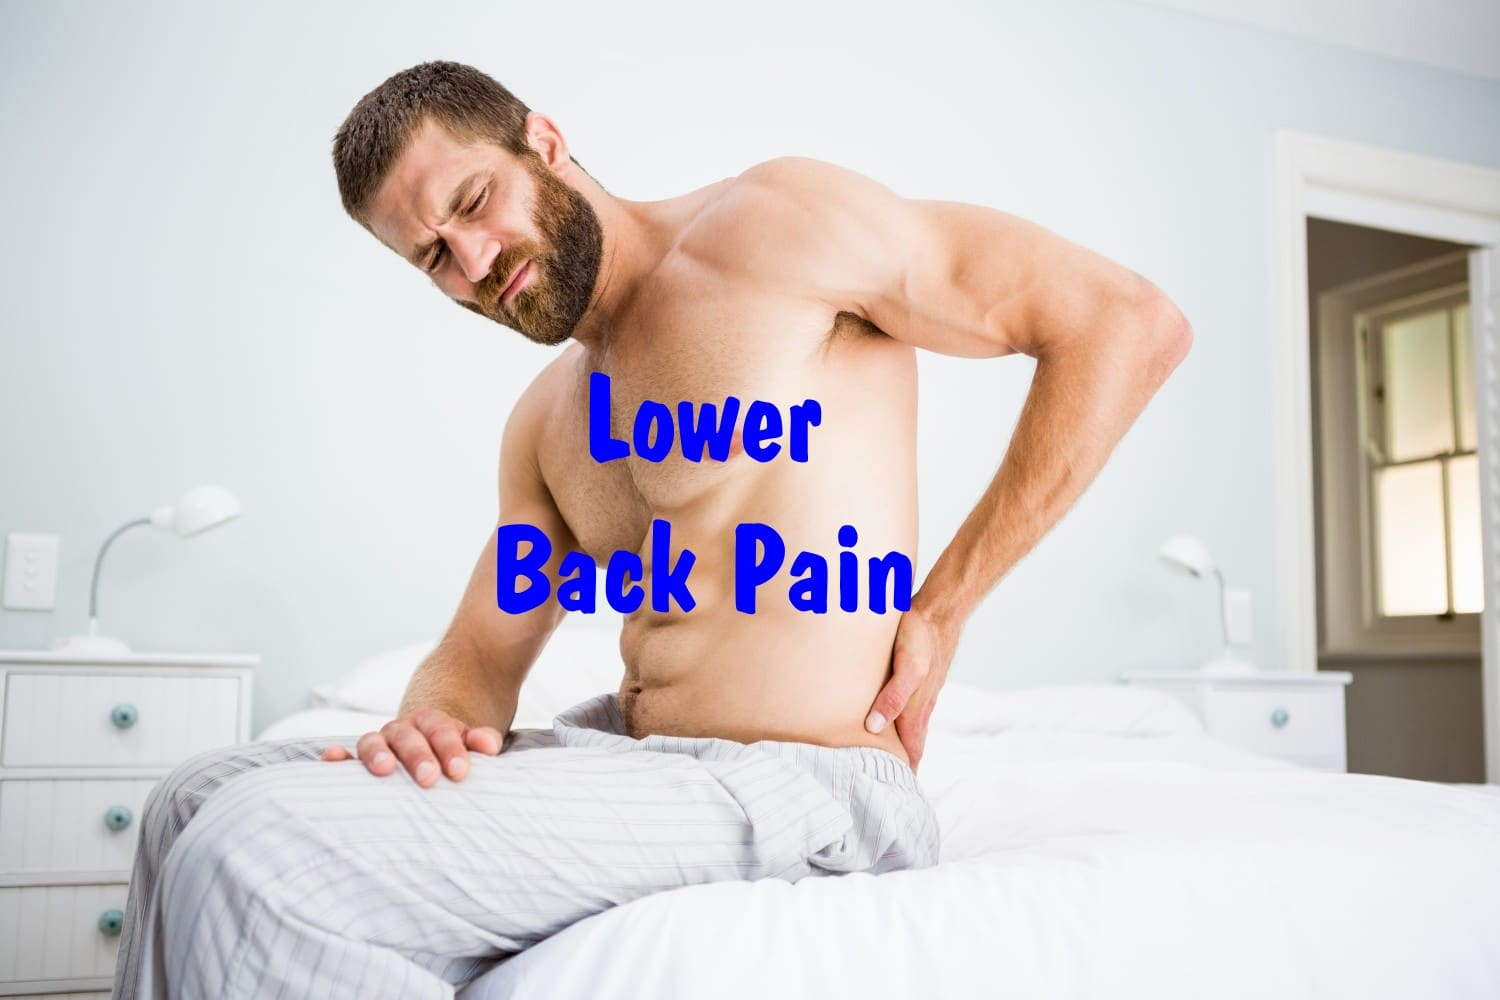 10 Home Remedies for Lower back Pain